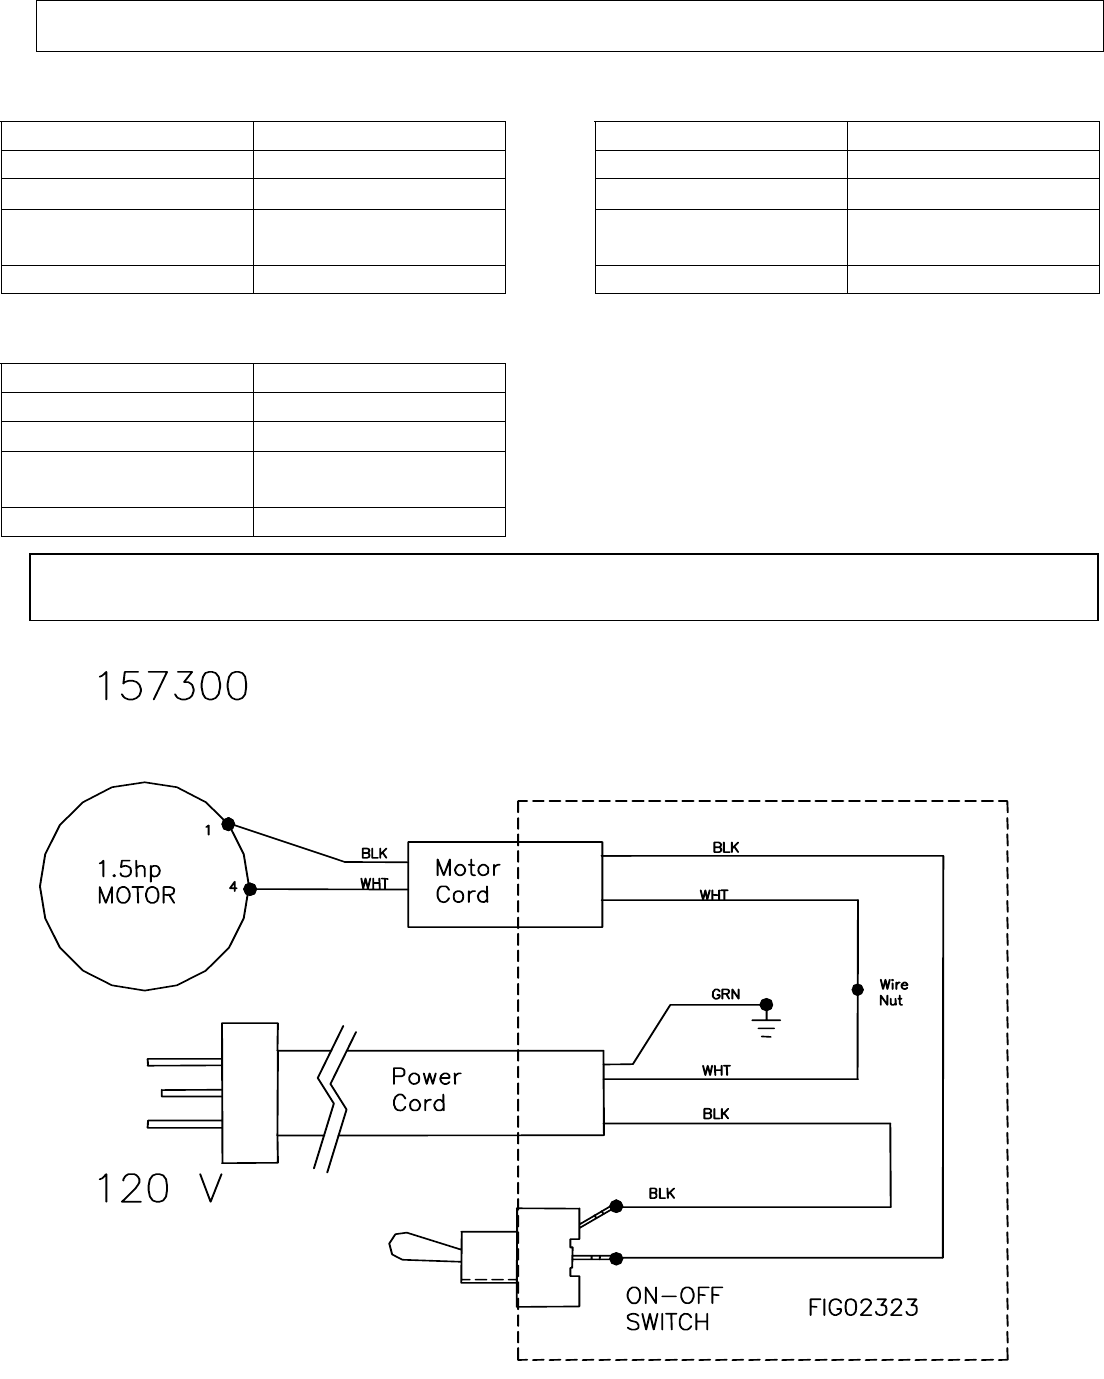 da9be920 8c83 80b4 2976 a1607c7637d5 bg14 page 20 of north star pressure washer m157300e user guide hot water pressure washer wiring diagram at virtualis.co